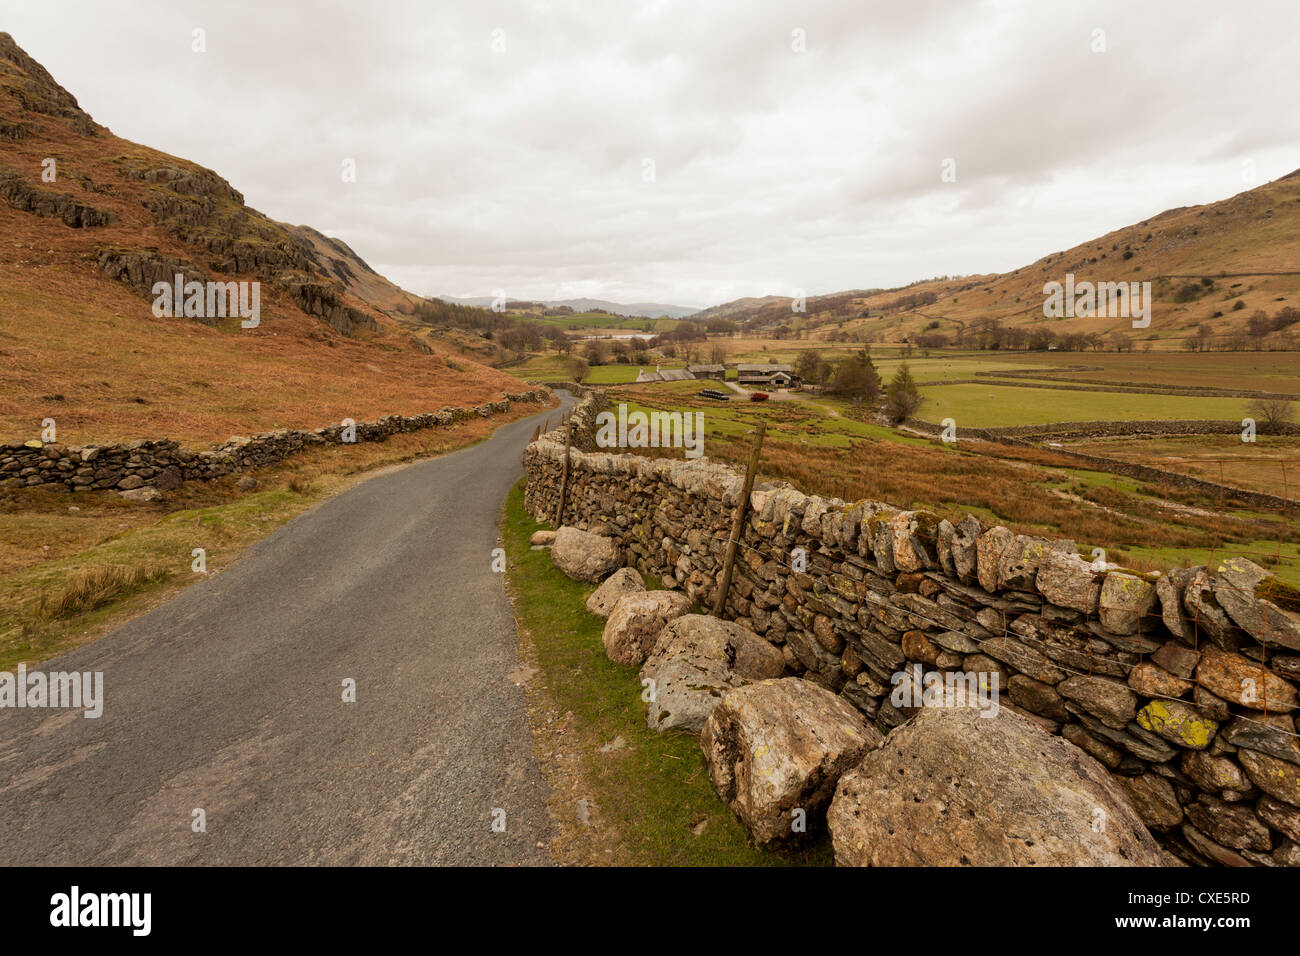 Country road leading down from Wrynose Pass, Lake District National Park, Cumbria, England, United Kingdom, Europe - Stock Image